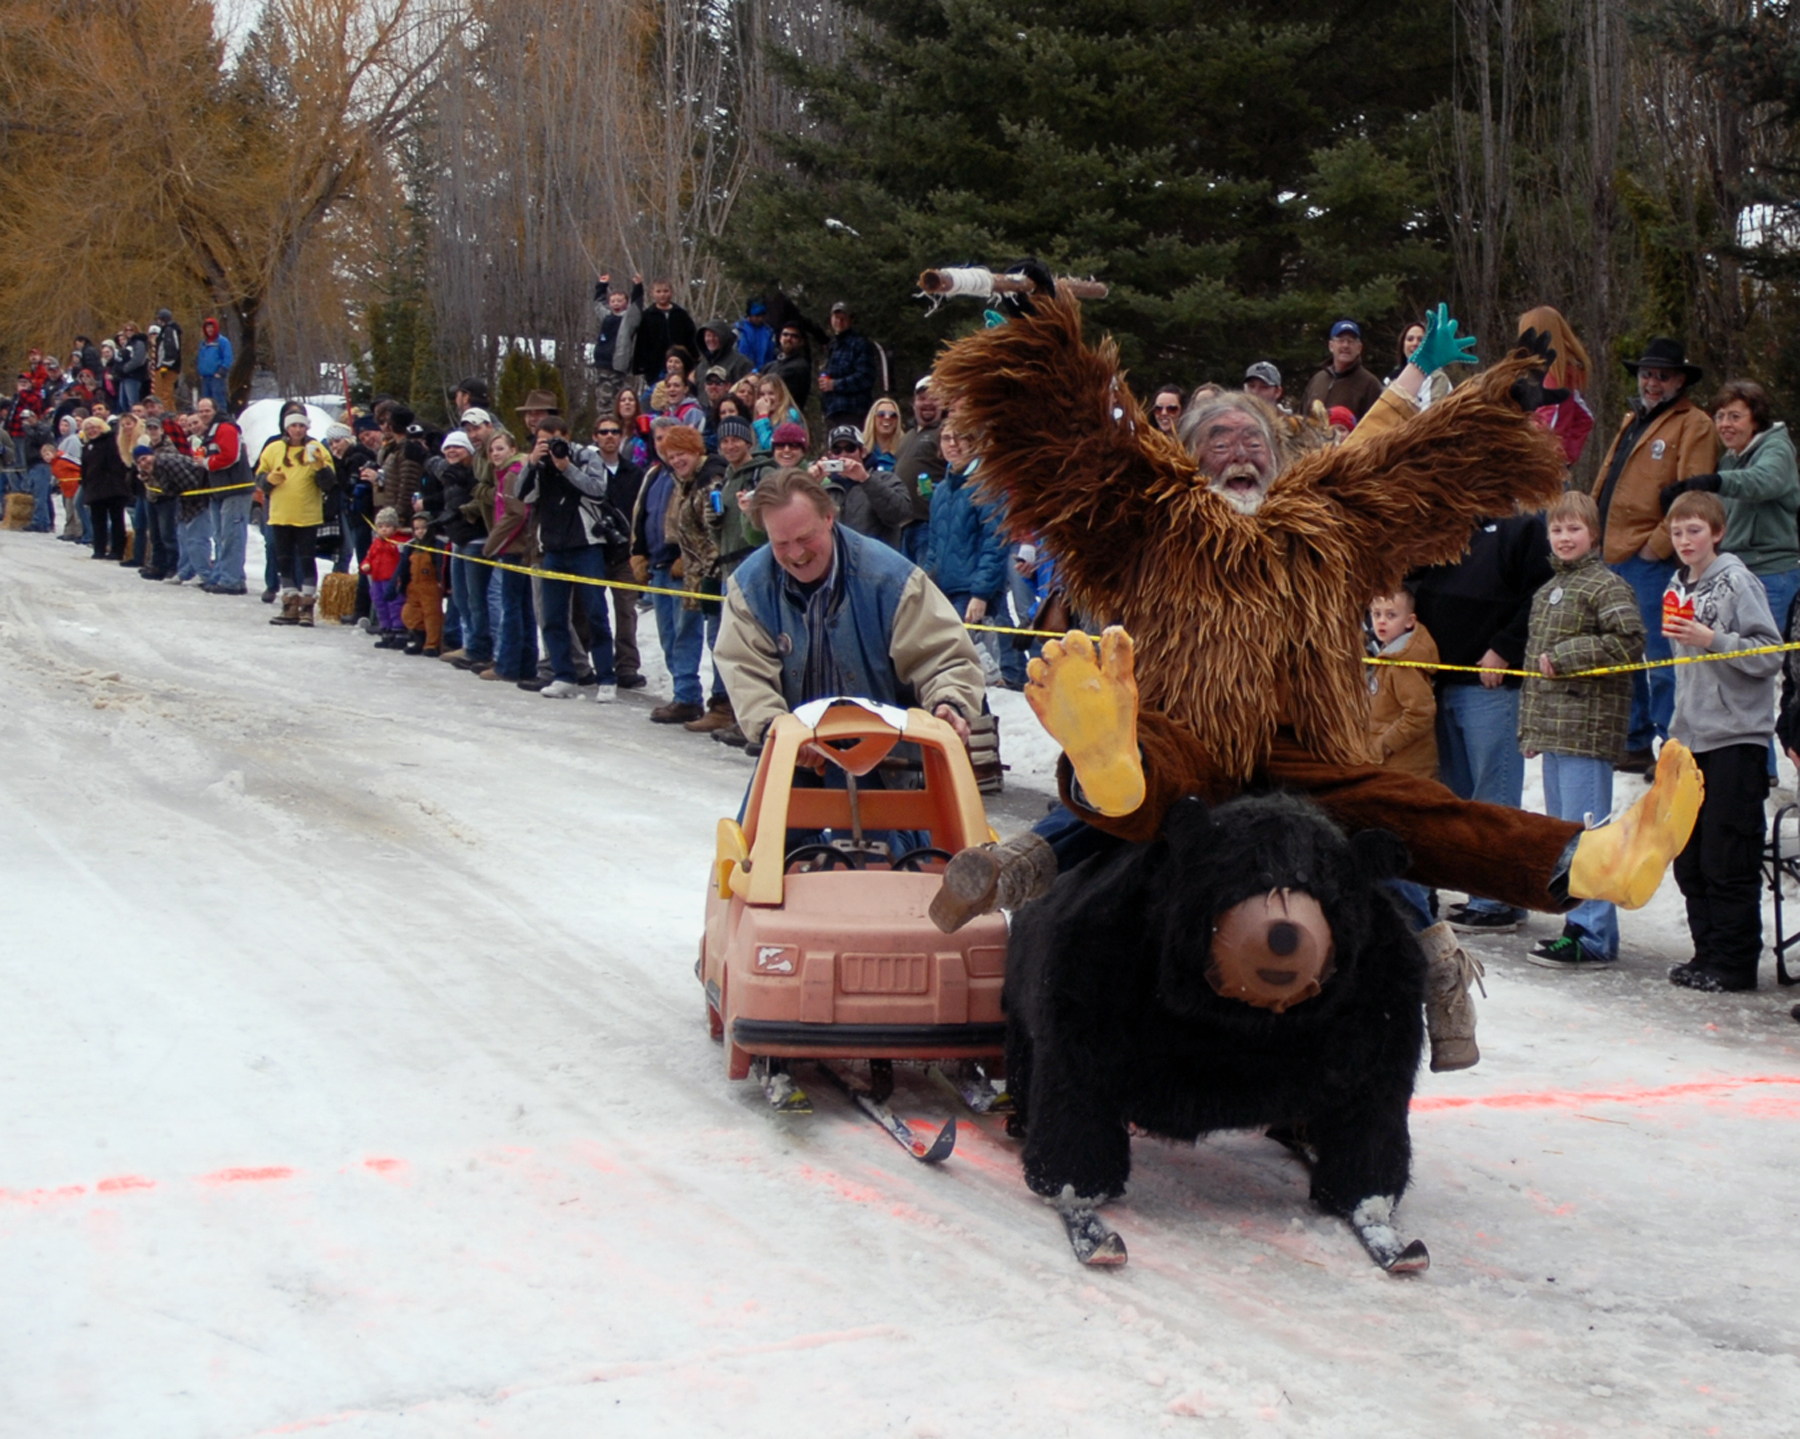 This Weekend In Northwest Montana Was The 33rd Annual Cabin Fever Days What A Hoot Cabin Fever Days Is A Three Day Cele Tion That Gets Everyone Outside